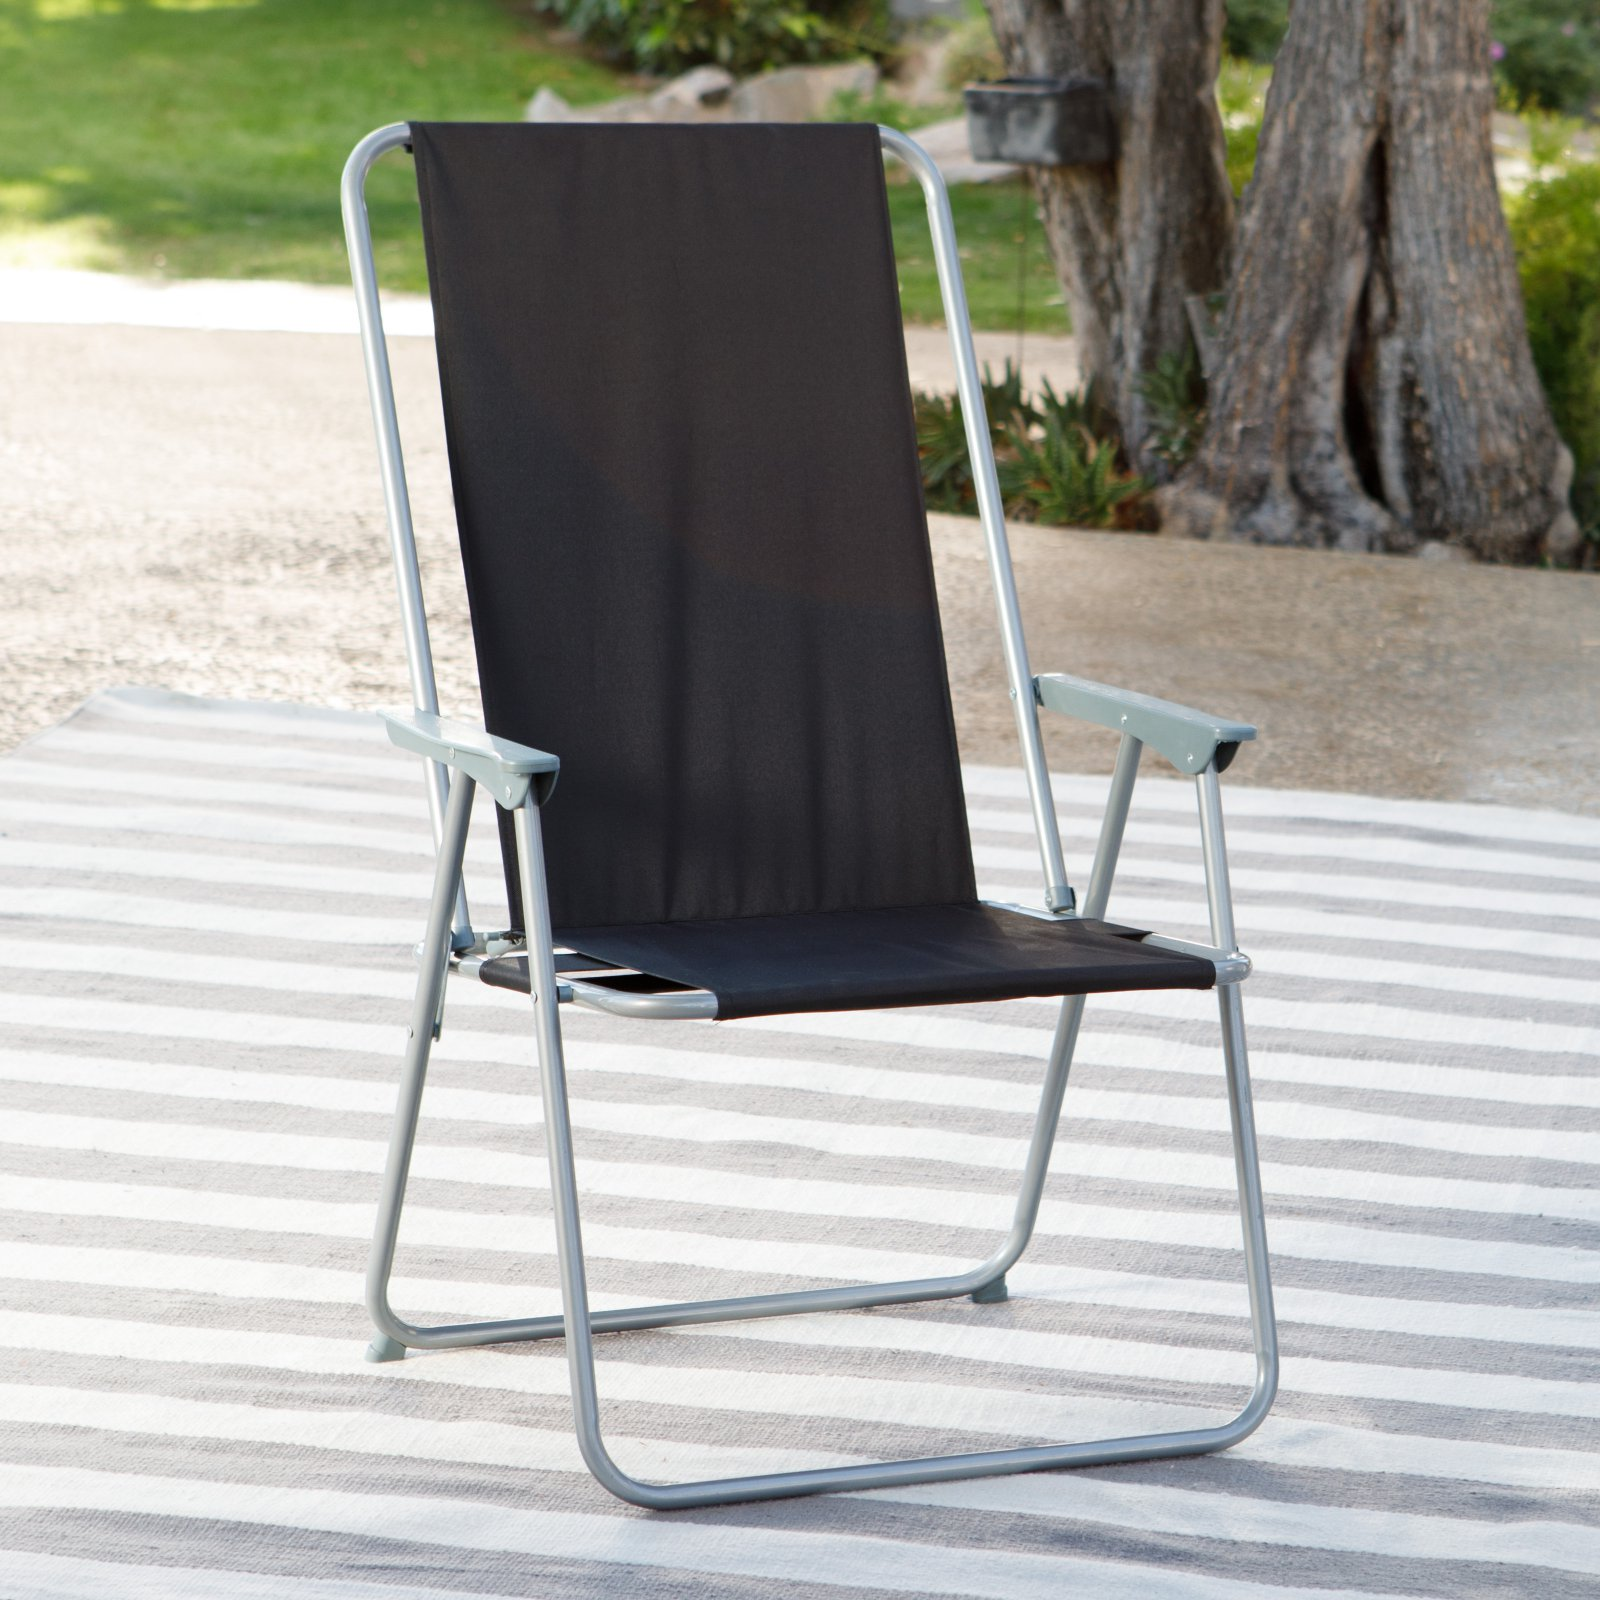 Phenomenal Coral Coast Oxford Folding Lawn Chair Short Links Chair Design For Home Short Linksinfo